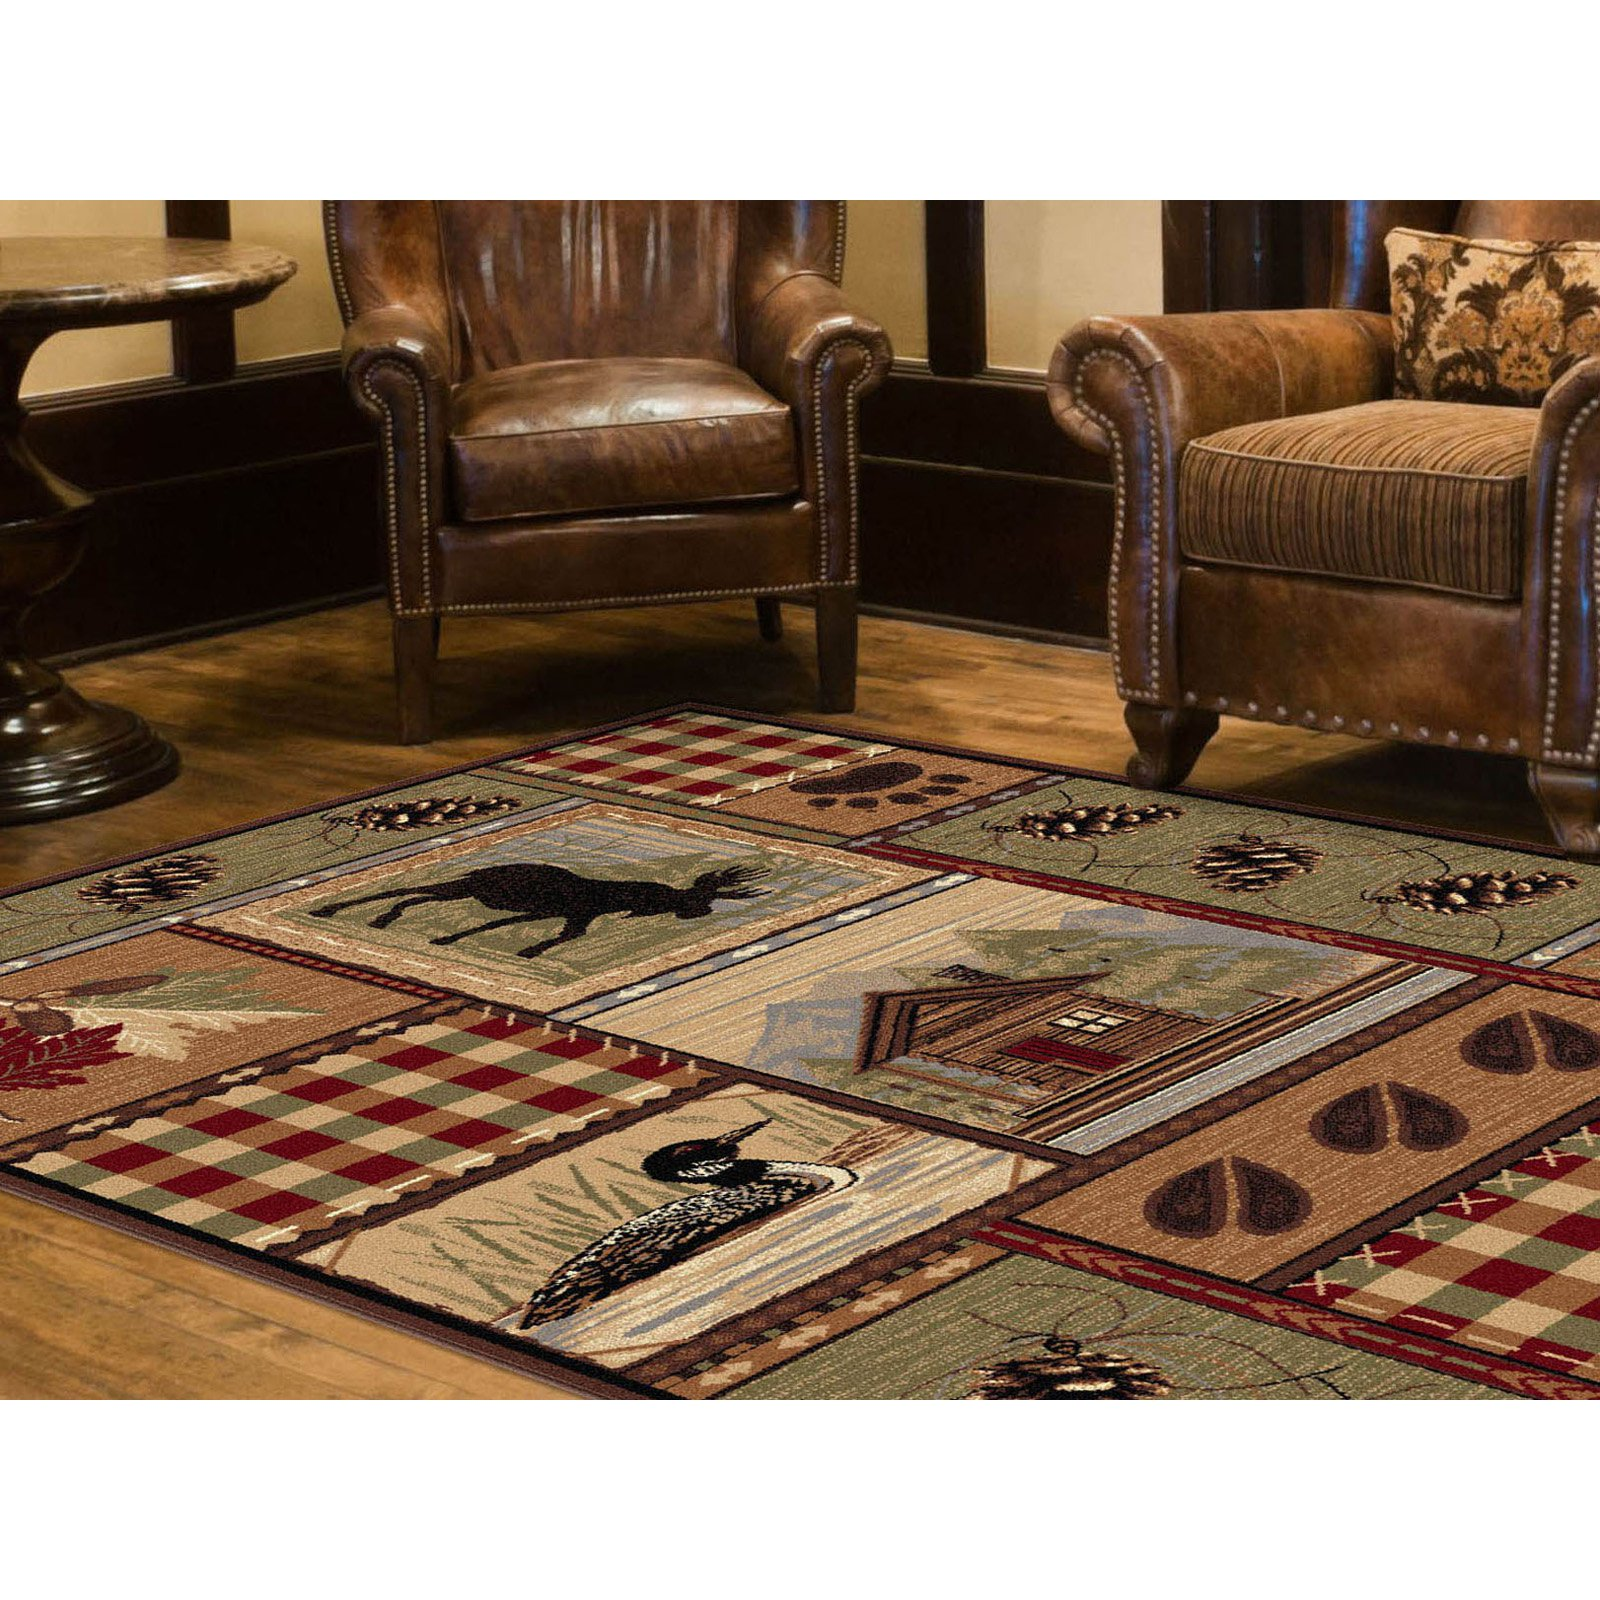 Tayse Nature 6548 Lodge Runner Indoor Area Rug